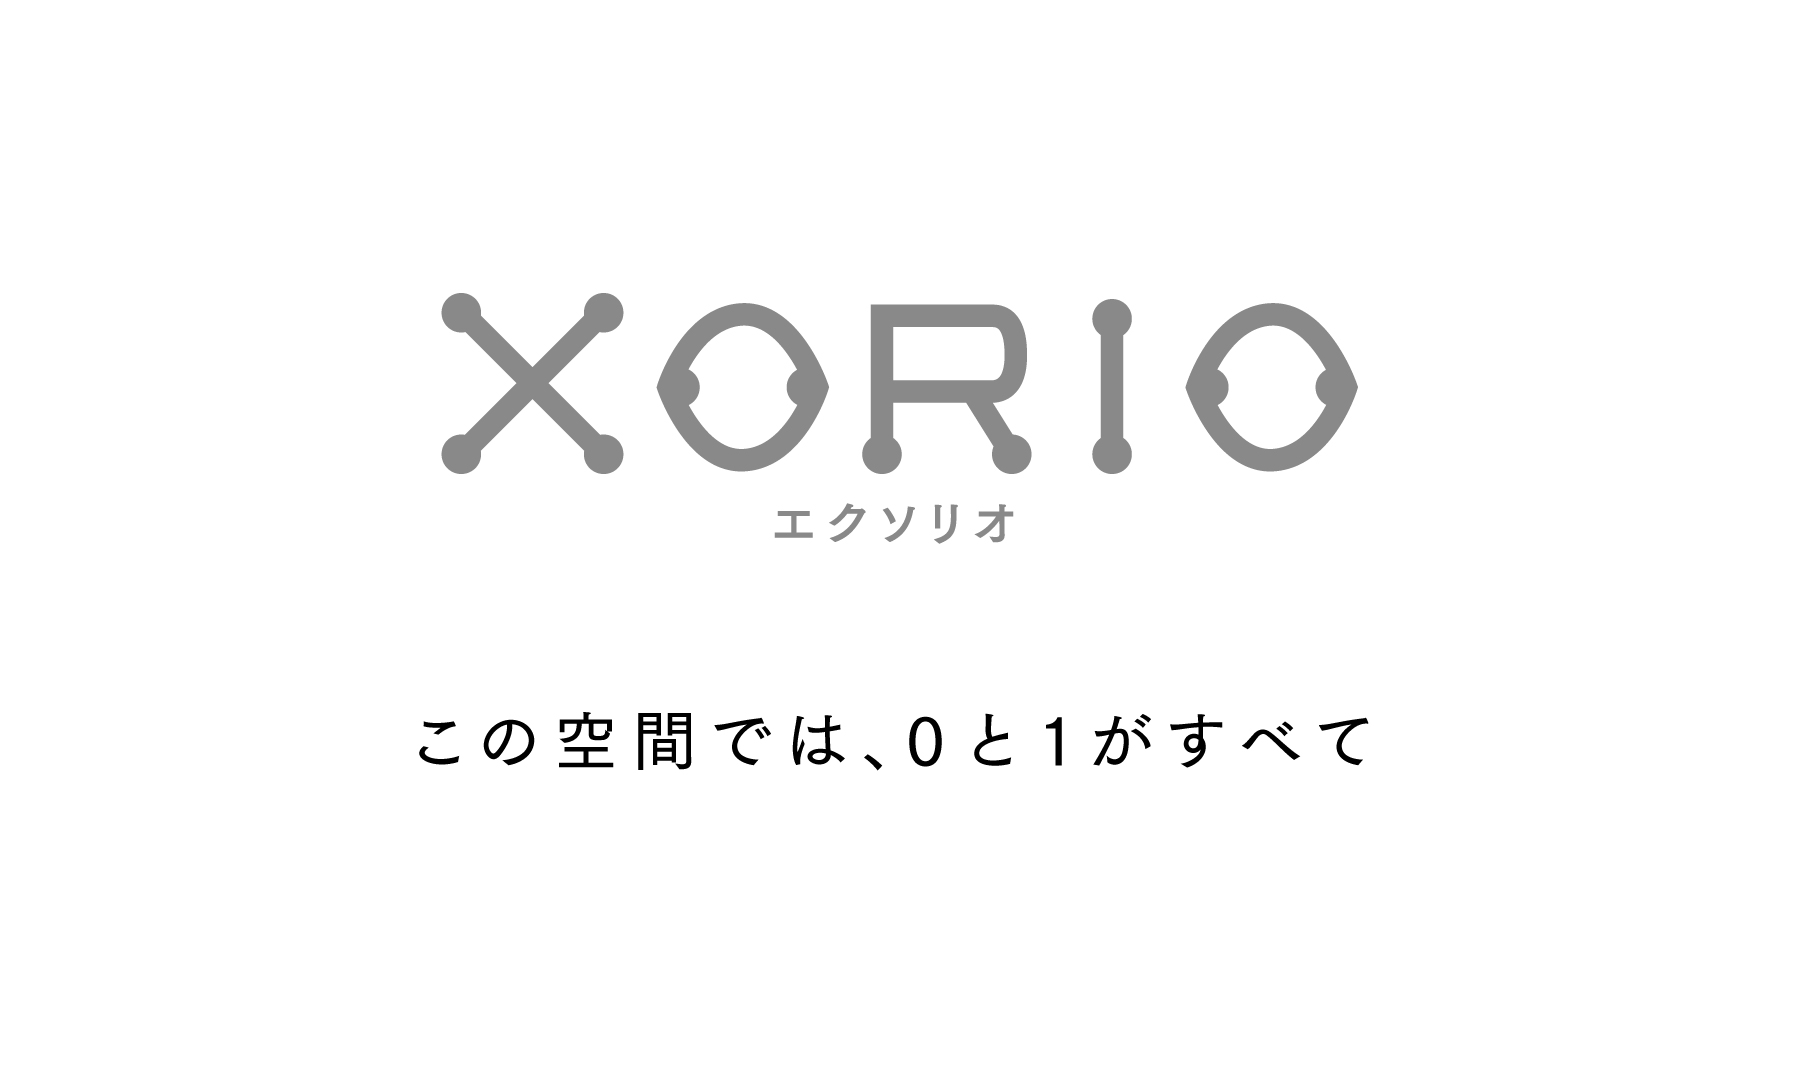 [works]ボードゲーム「XORIO」アートワーク